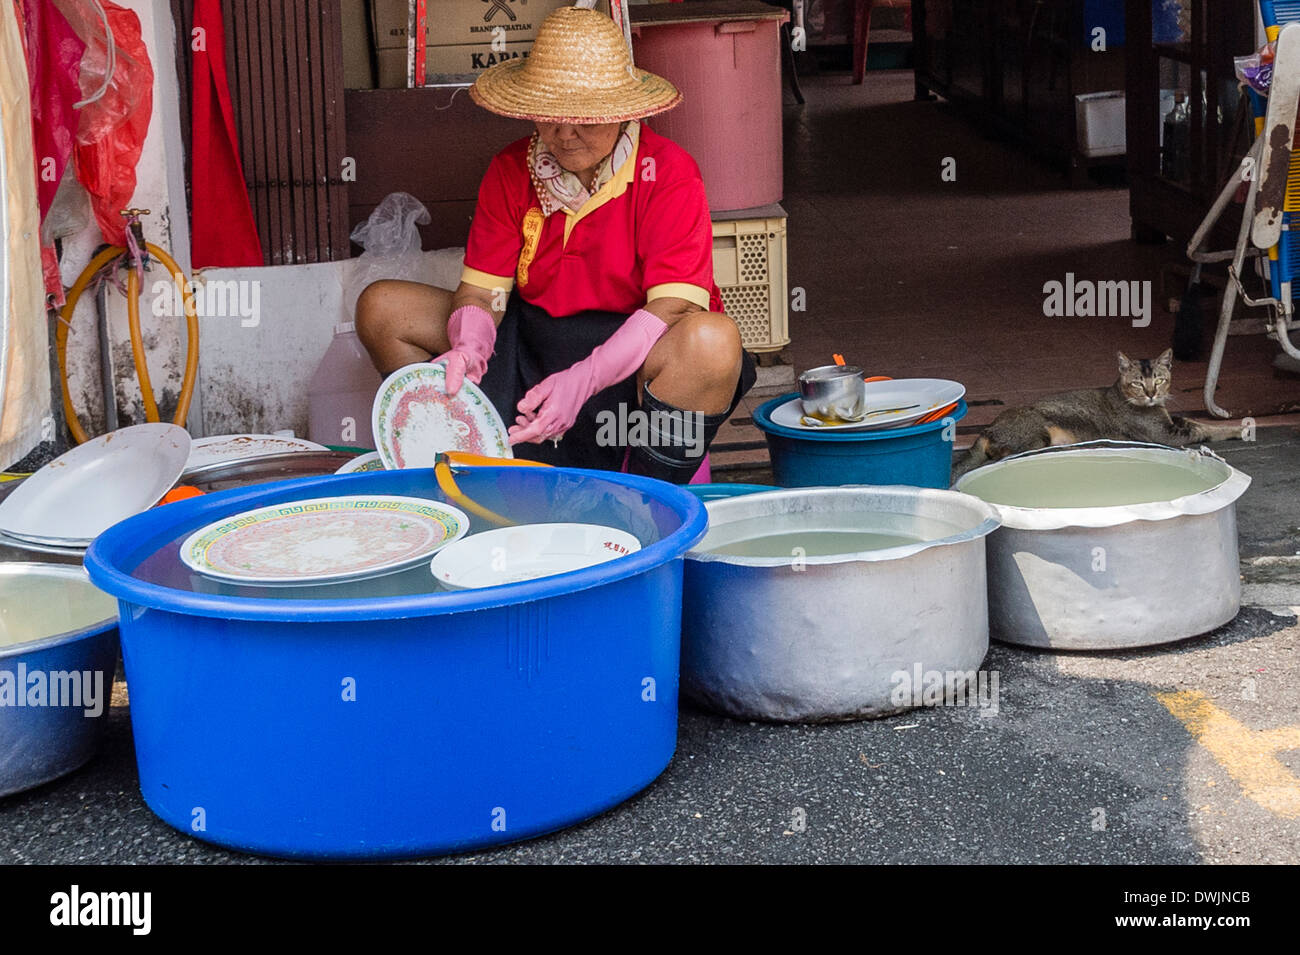 A lady washing dishes in Malacca - Stock Image